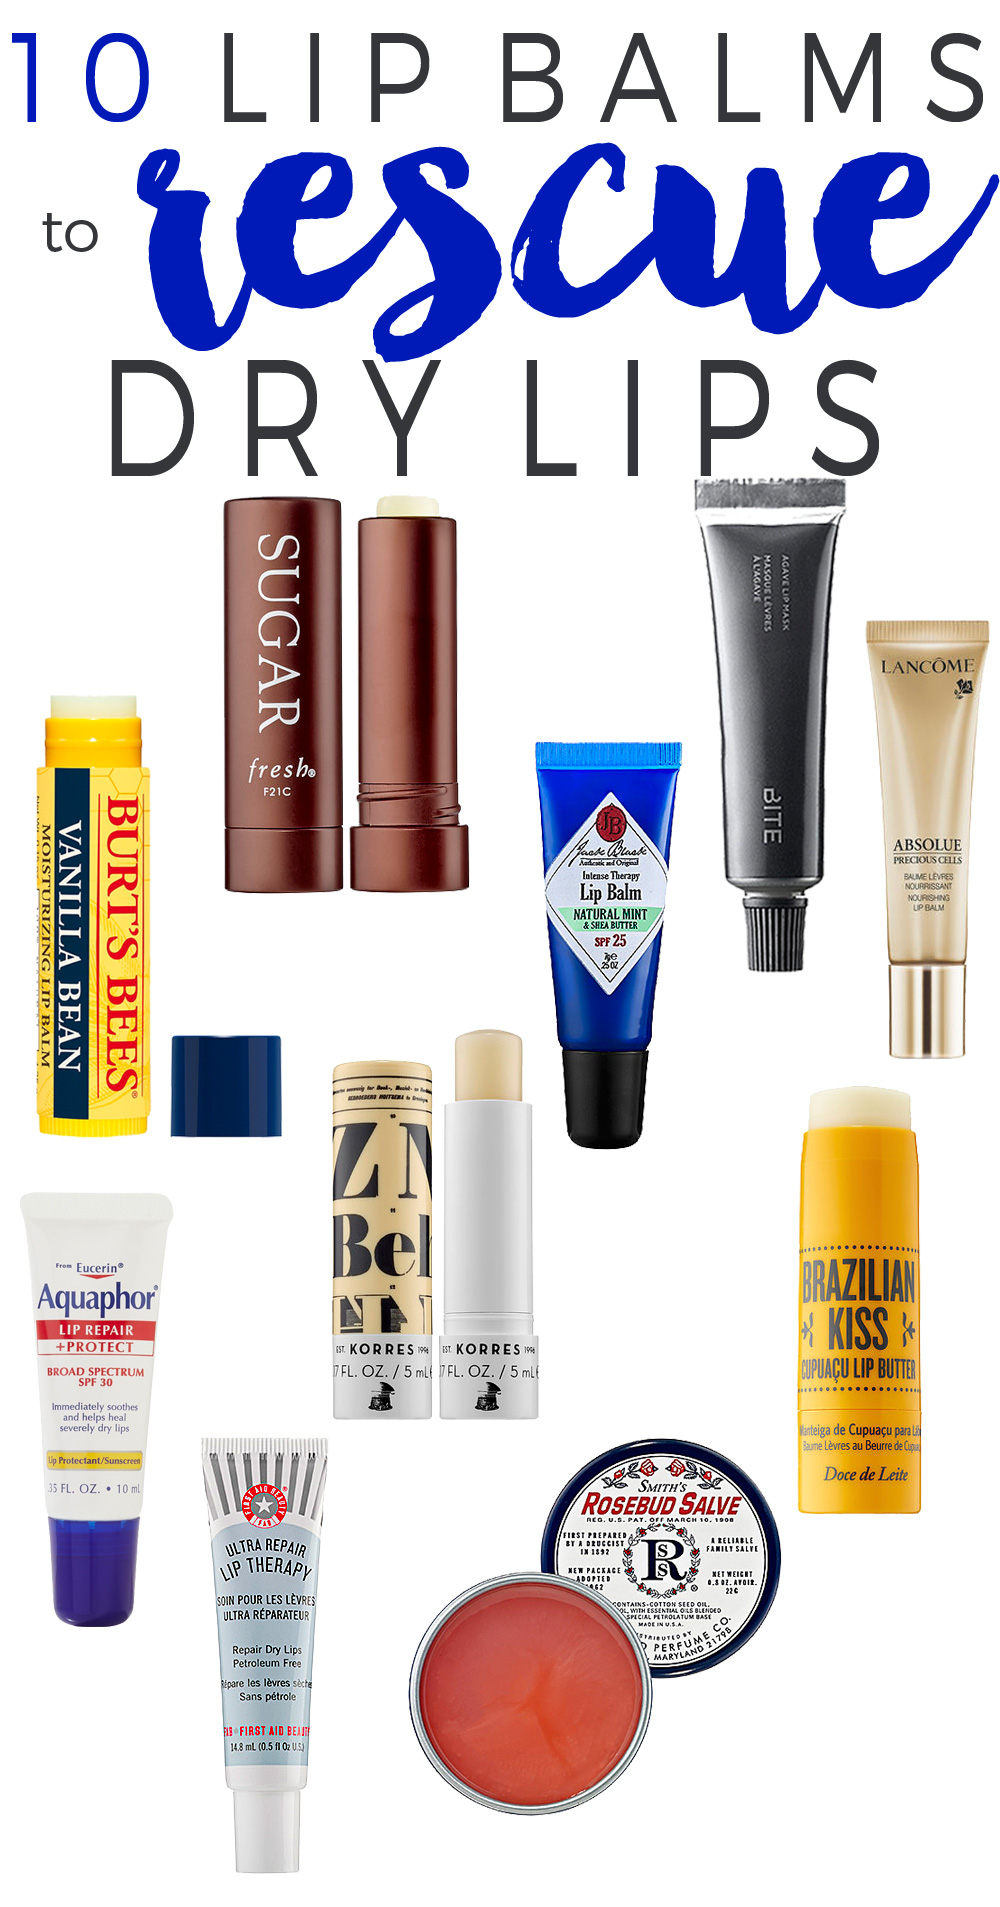 10 Lip Balms to Rescue Dry Lips